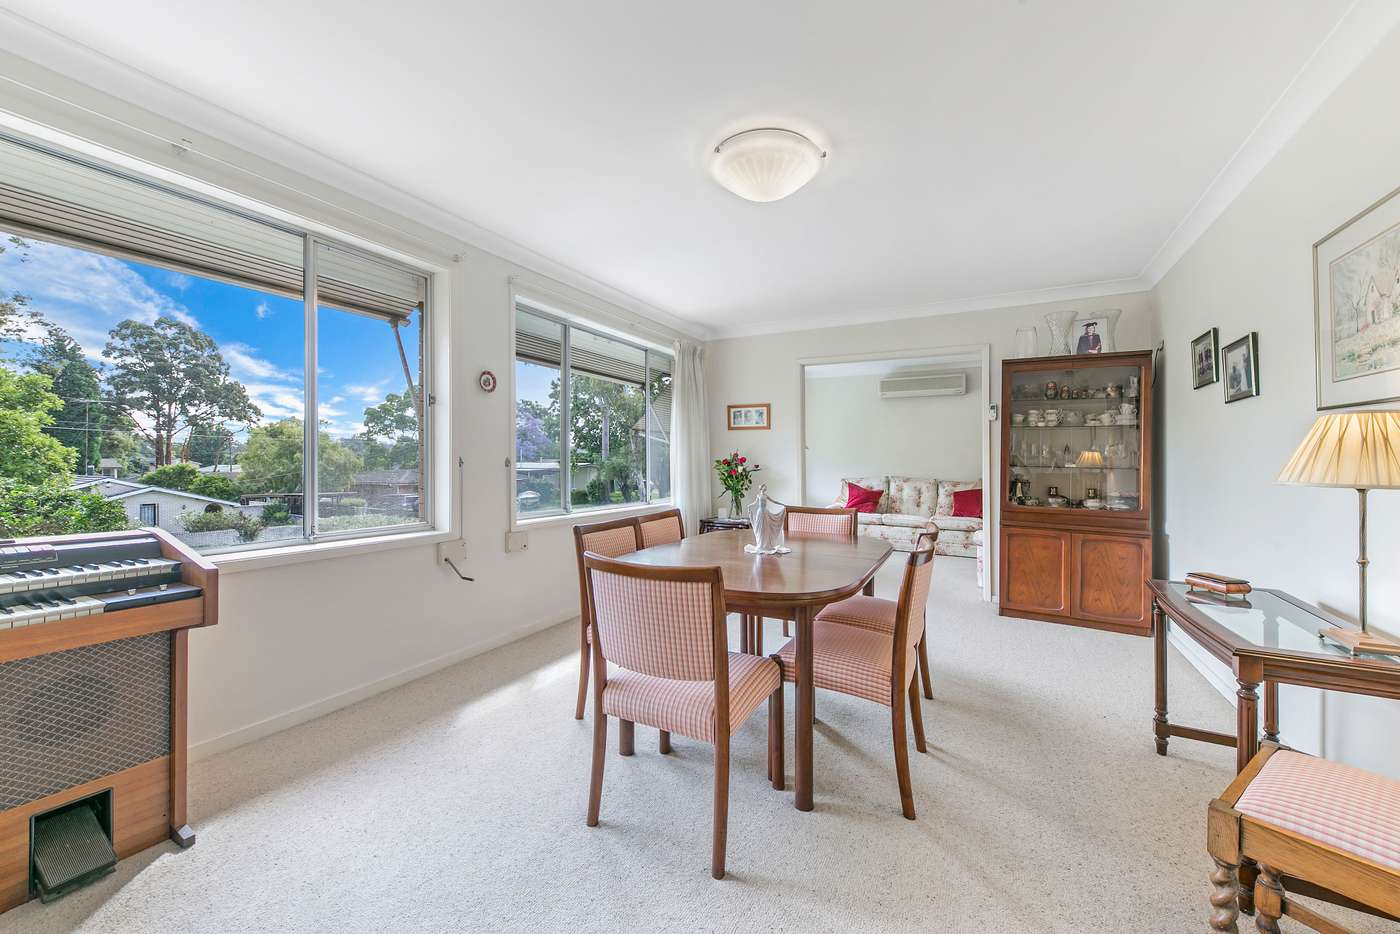 Fifth view of Homely house listing, 19 Cameron Avenue, Baulkham Hills NSW 2153